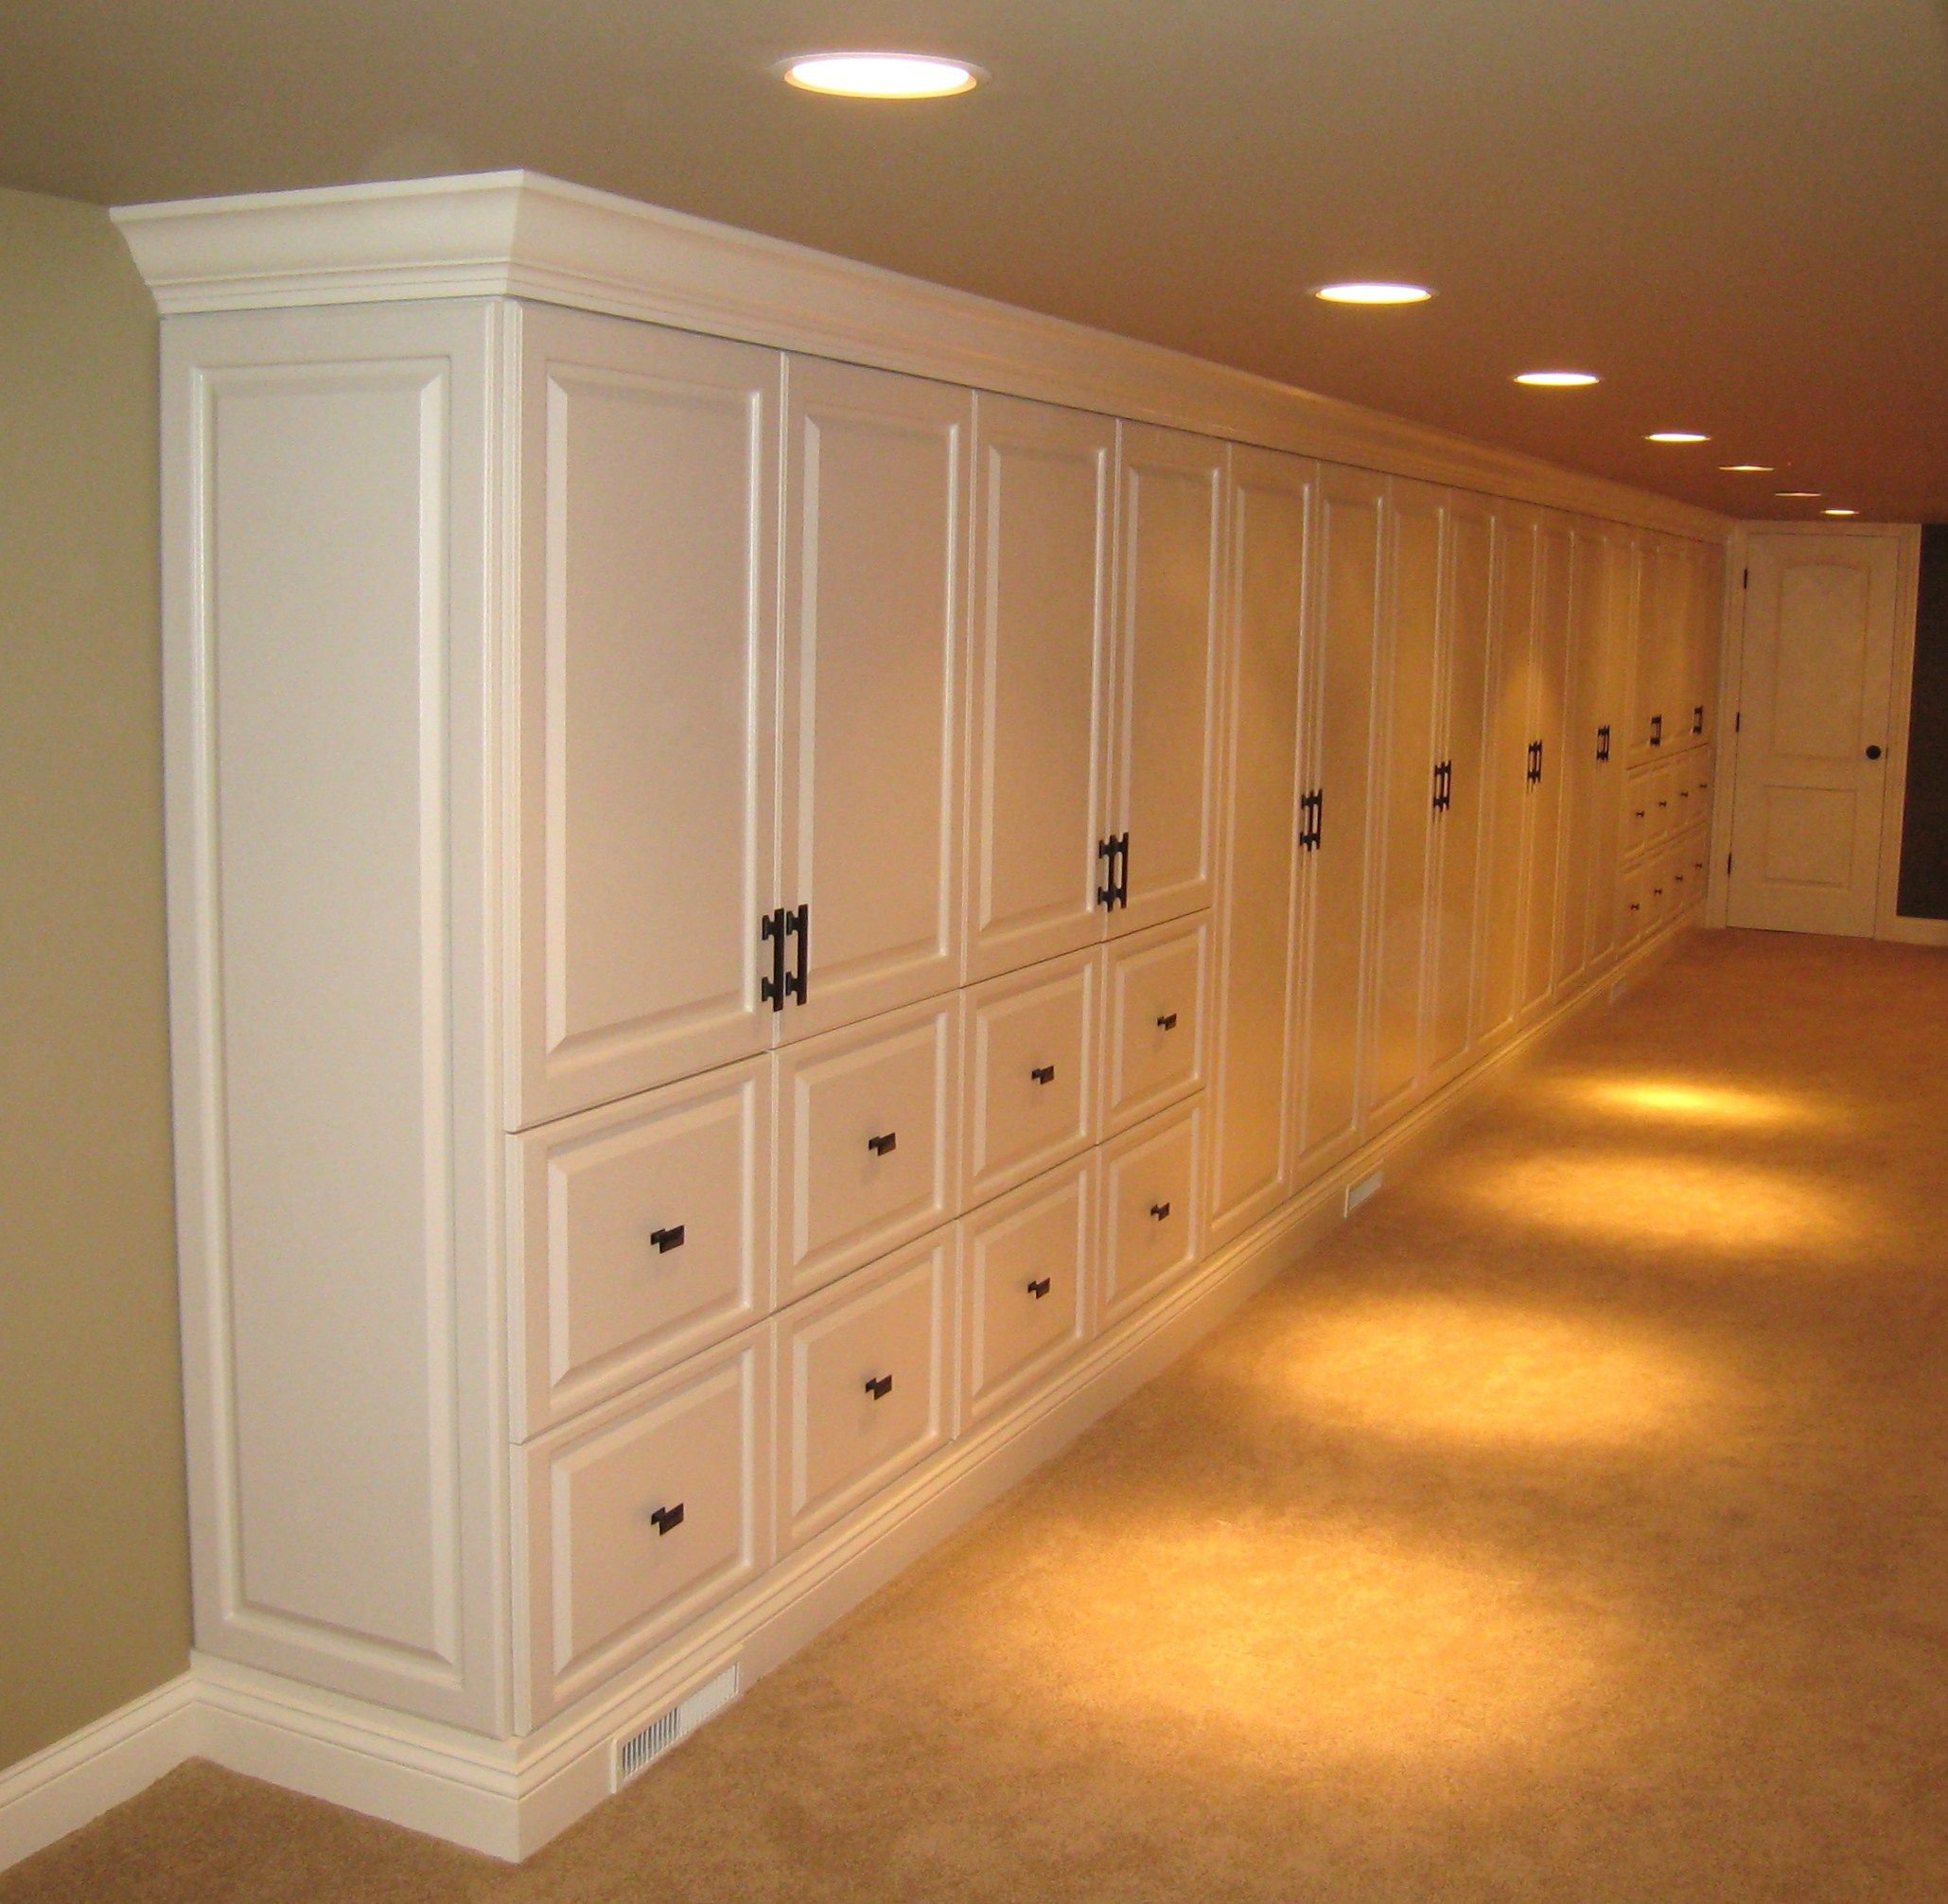 Formal storage cabinets in basement family room  Builtin Cabinets in 2019  Basement storage